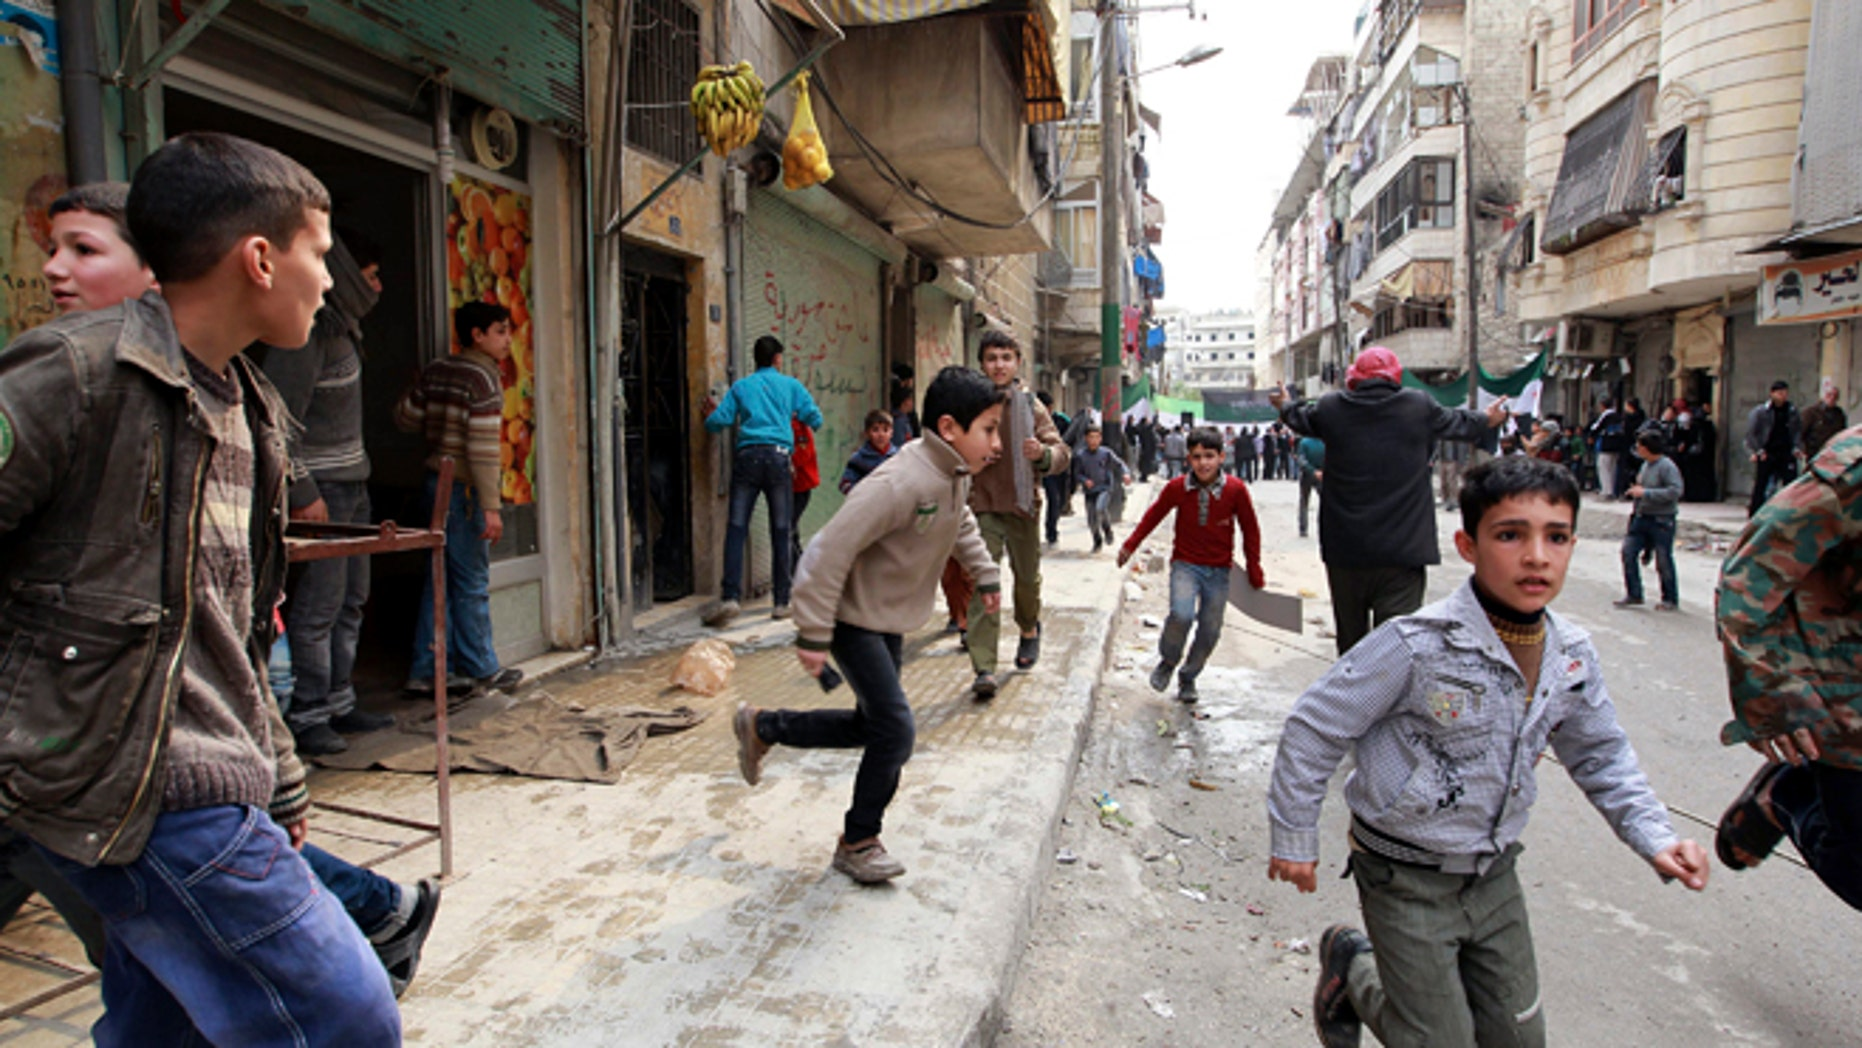 Feb. 22, 2013: People run upon hearing a nearby plane bombing during a protest against Syrian President Bashar al-Assad in the al-Katerji Tariq district in Aleppo.